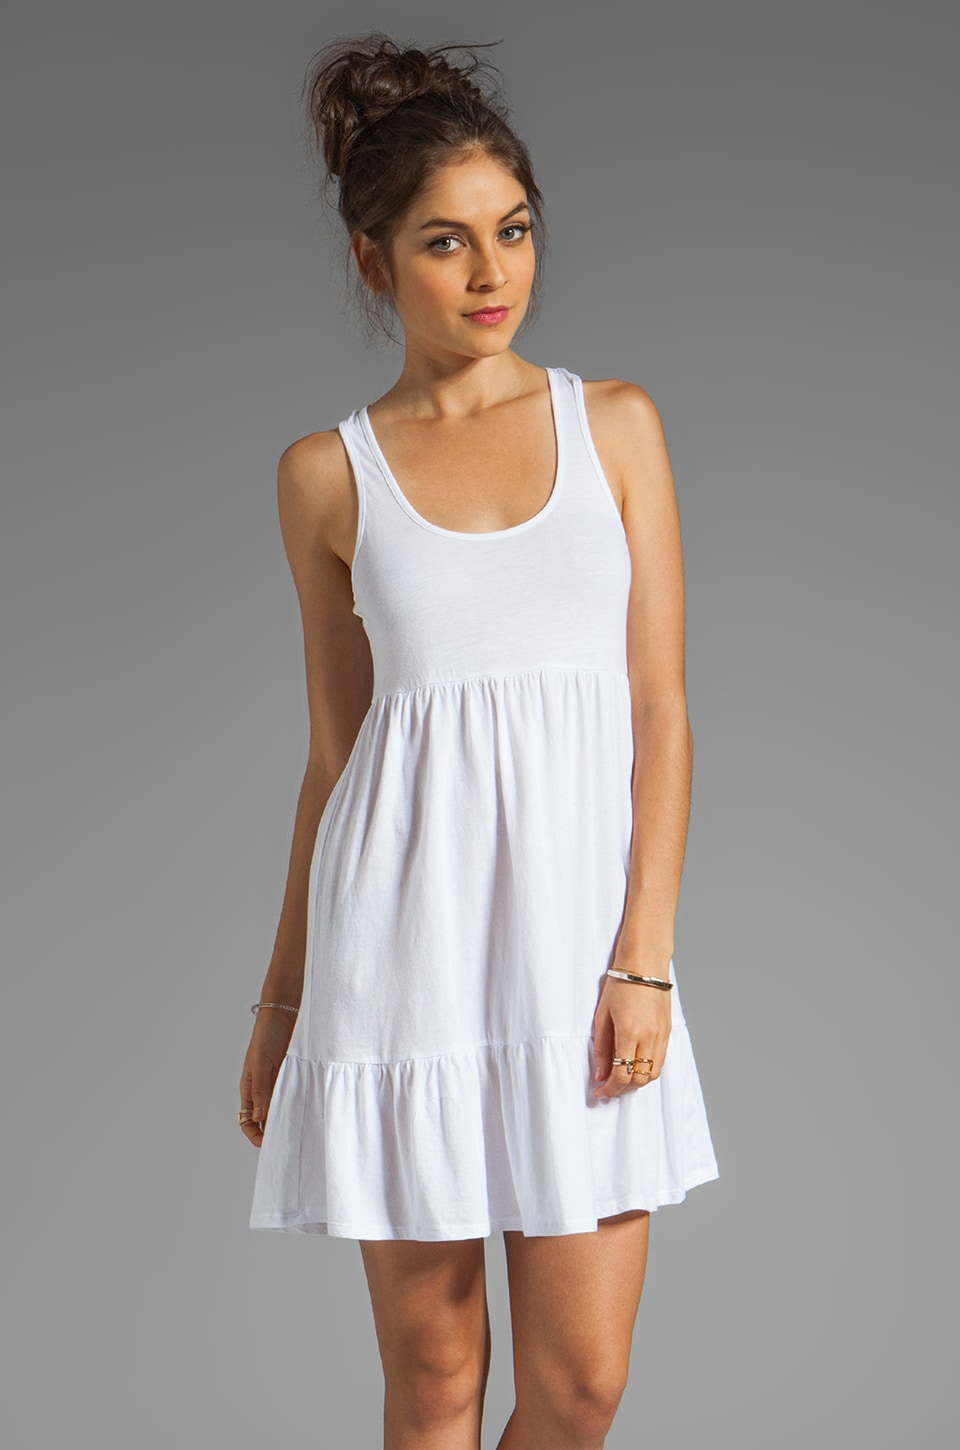 Bobi Light Weight Jersey Tank Dress in White